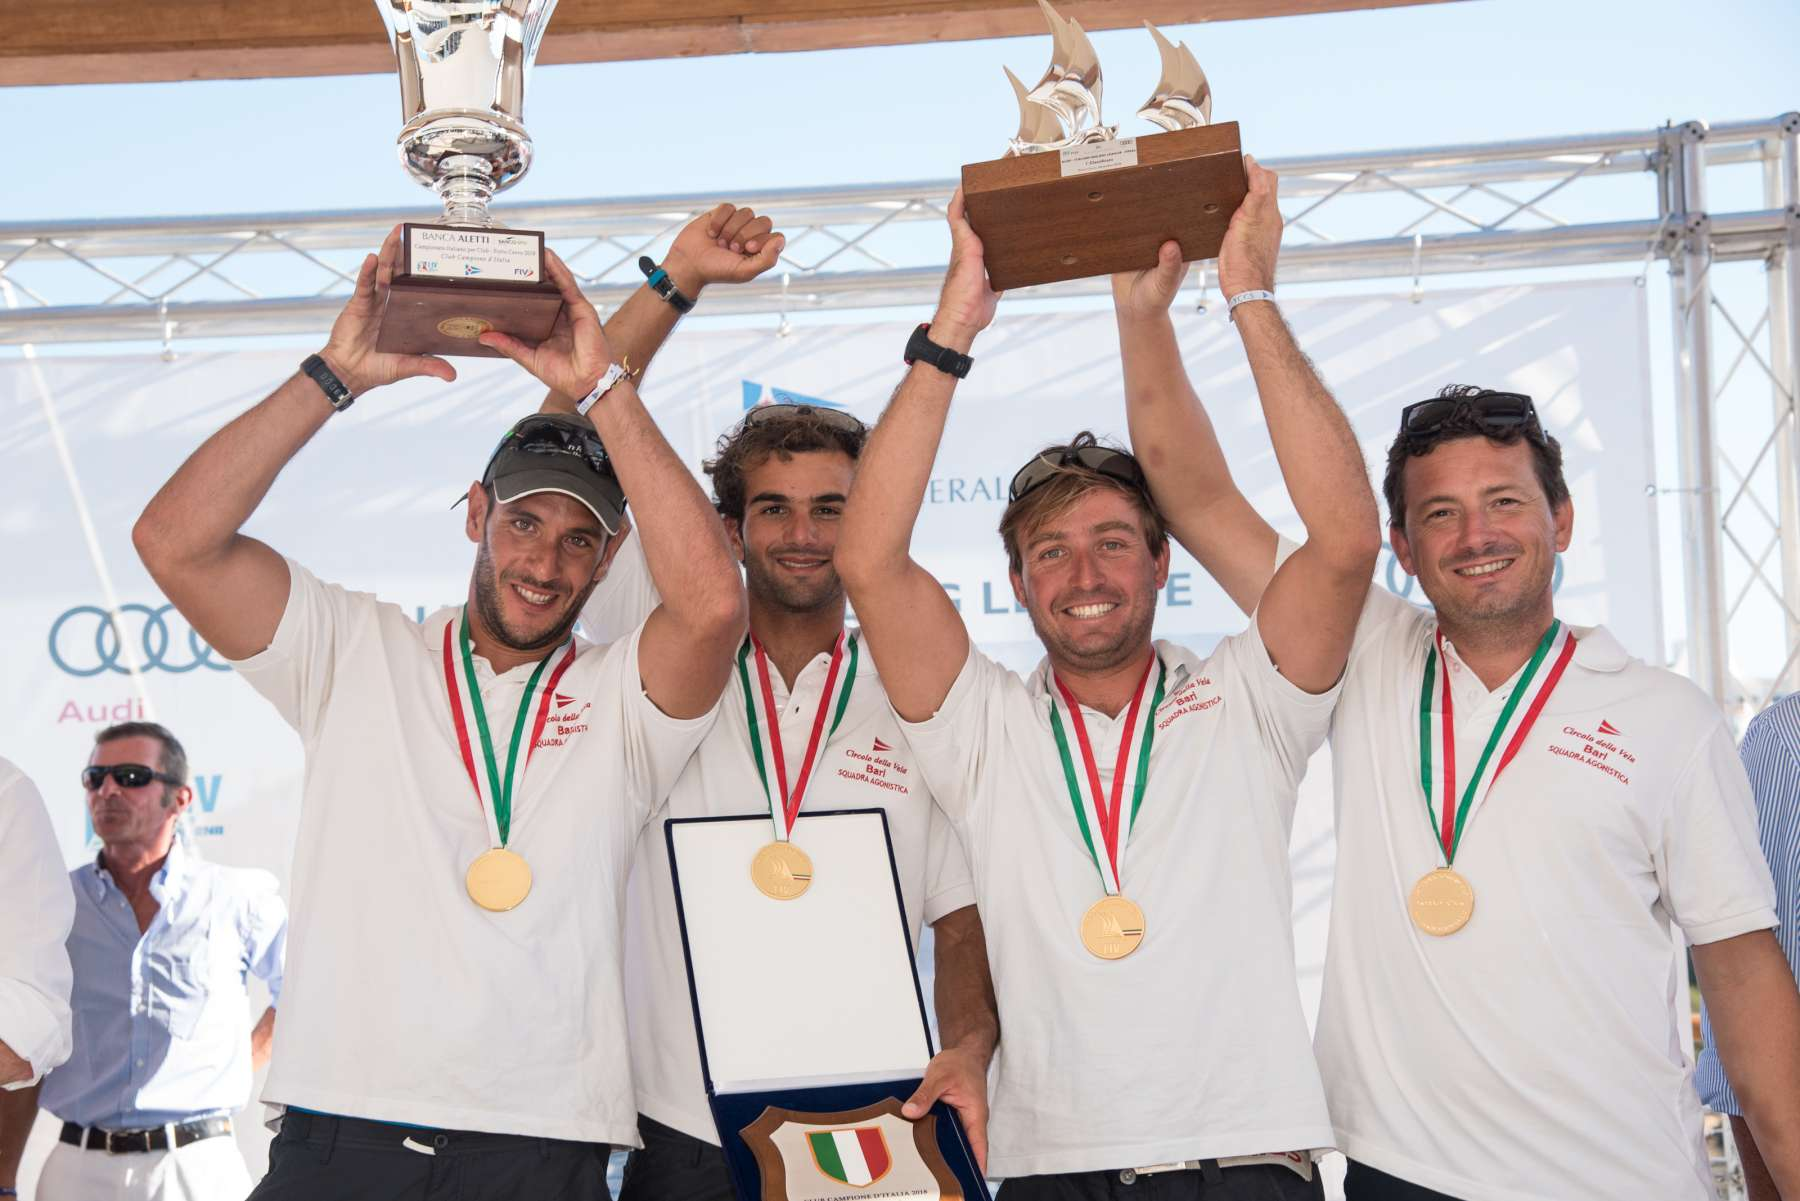 Audi Italian Sailing League Final: Circolo della Vela Bari crowned National Club Champion - NEWS - Yacht Club Costa Smeralda